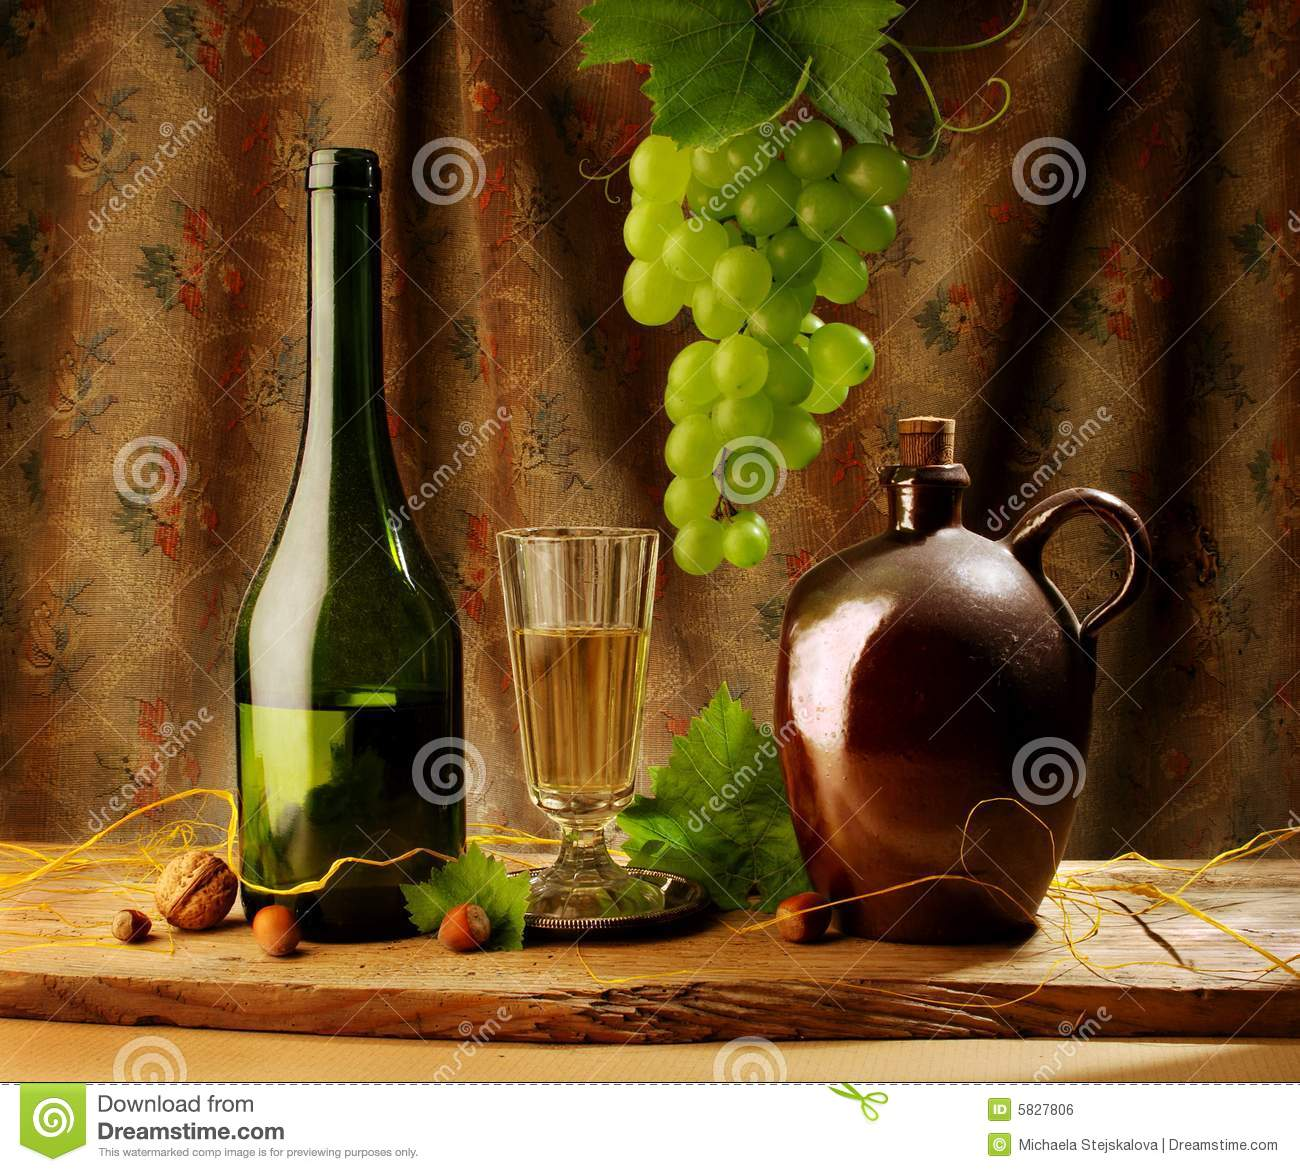 Retro still life with wine